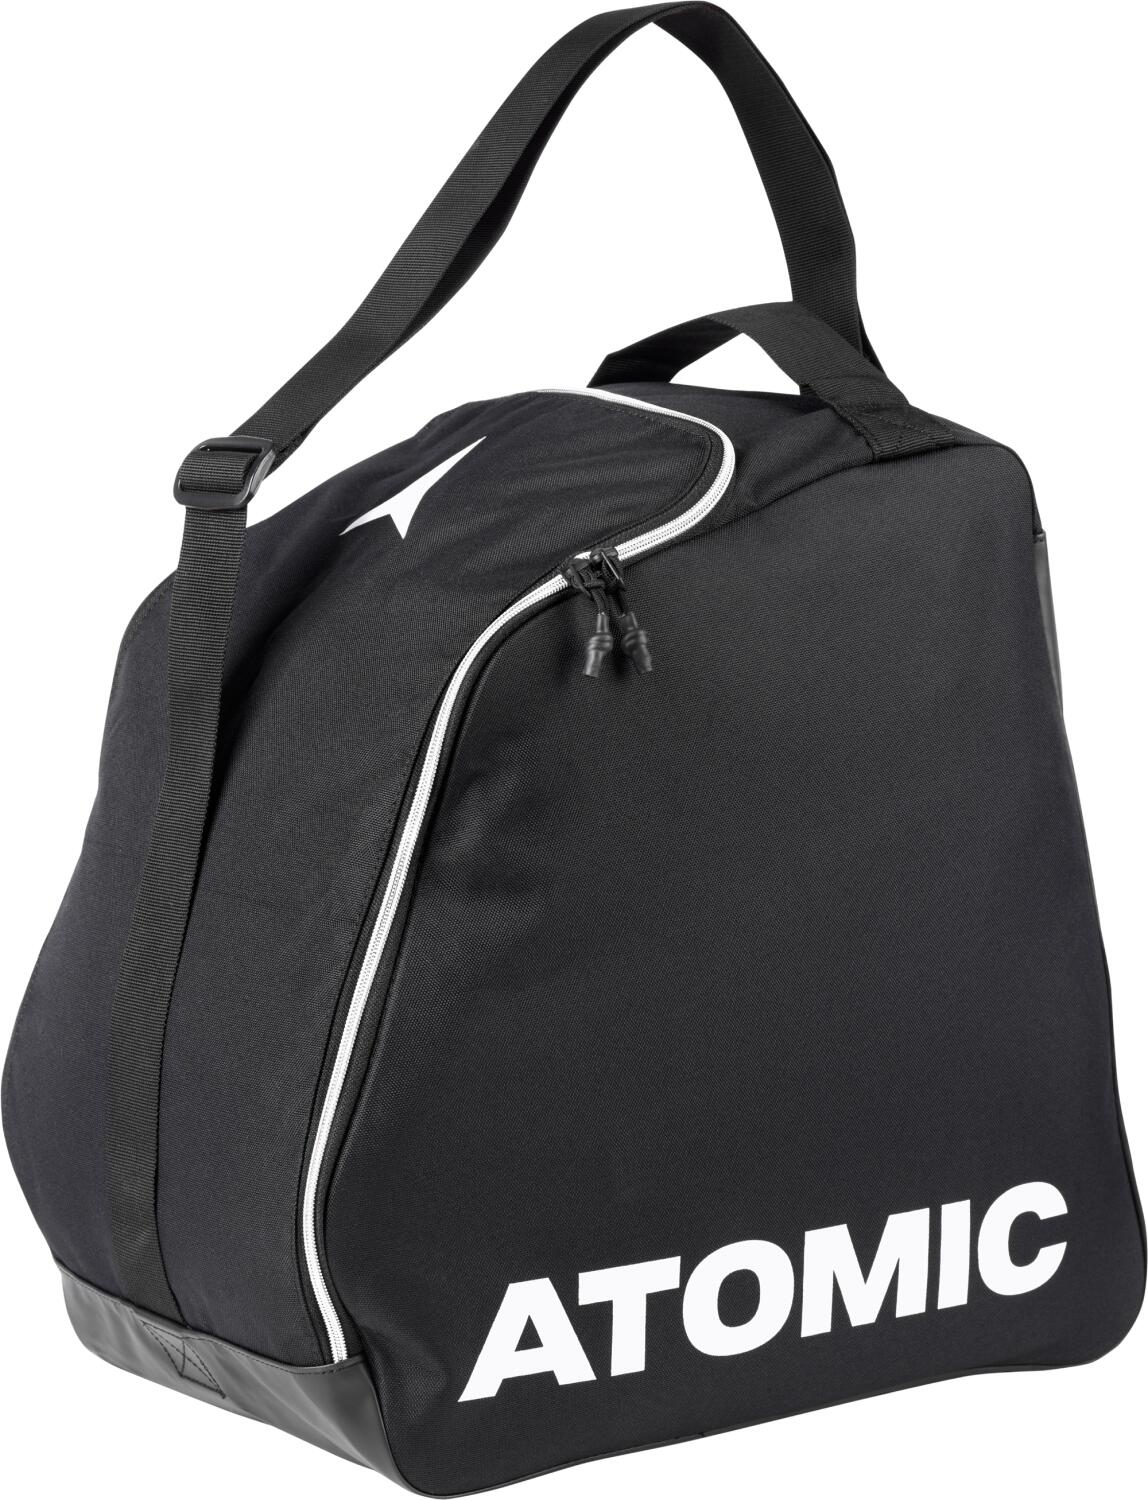 atomic-boot-bag-2-0-skischuhtasche-farbe-black-white-